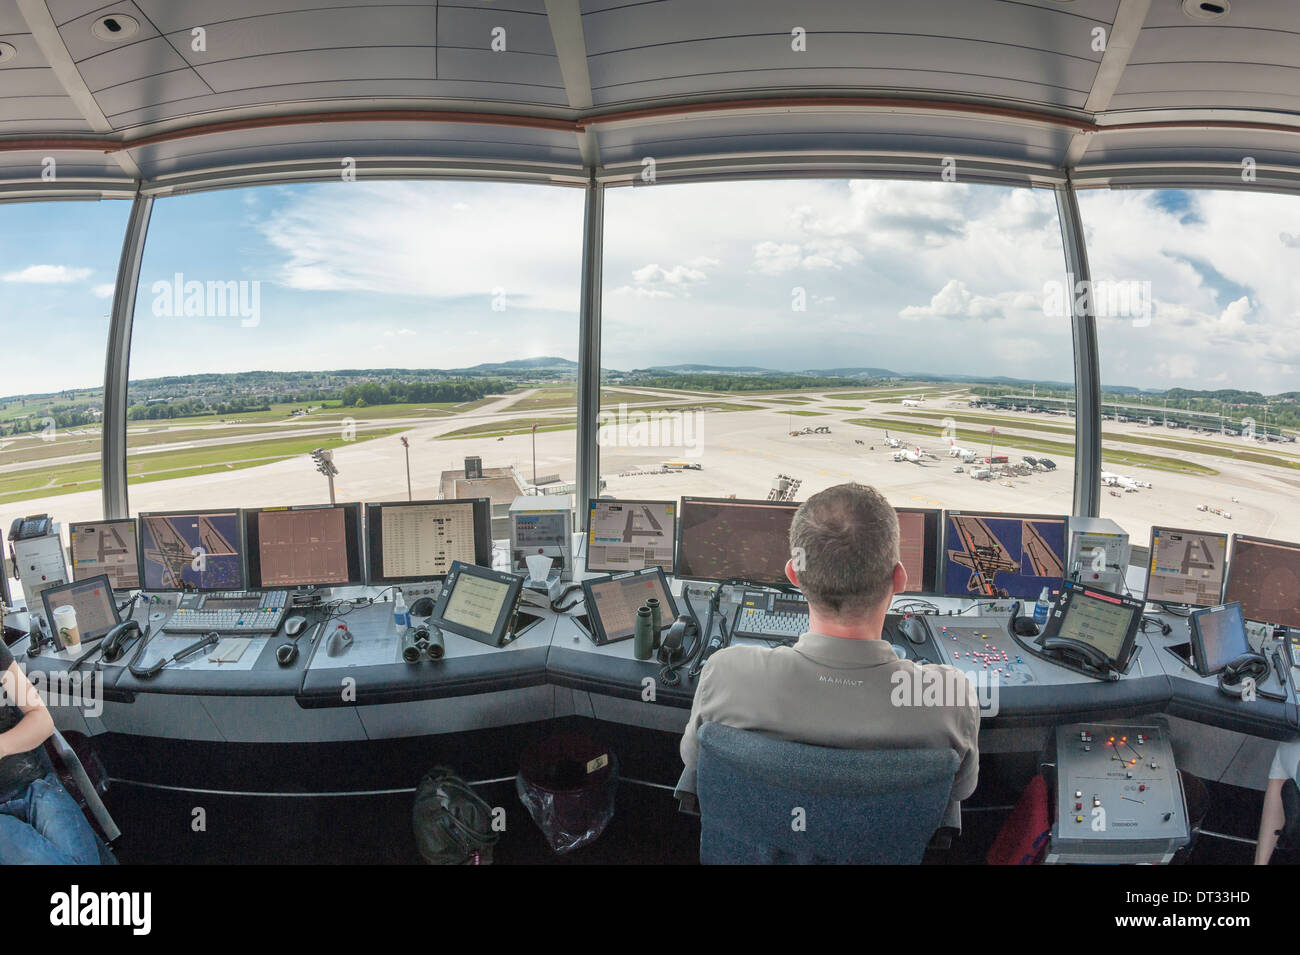 Air traffic controllers in the control tower of Zurich/Kloten international airport are monitoring the airport's airfield. - Stock Image